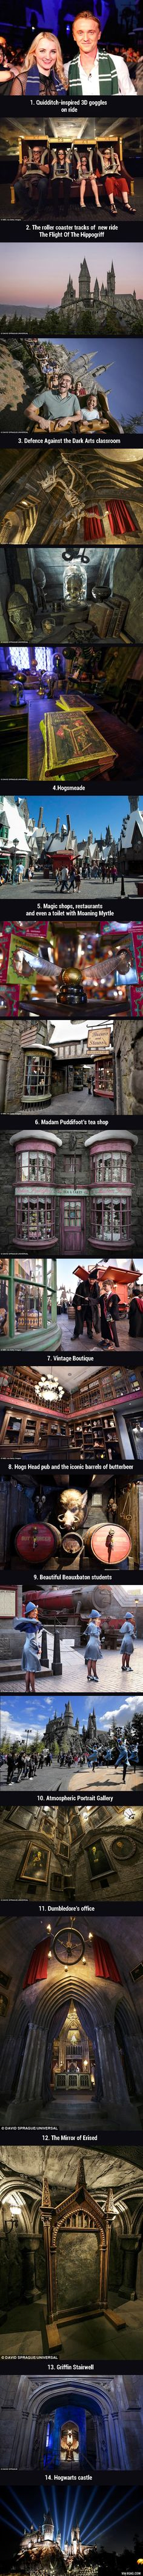 First Look At The Wizarding World of Harry Potter At Los Angeles - 9GAG